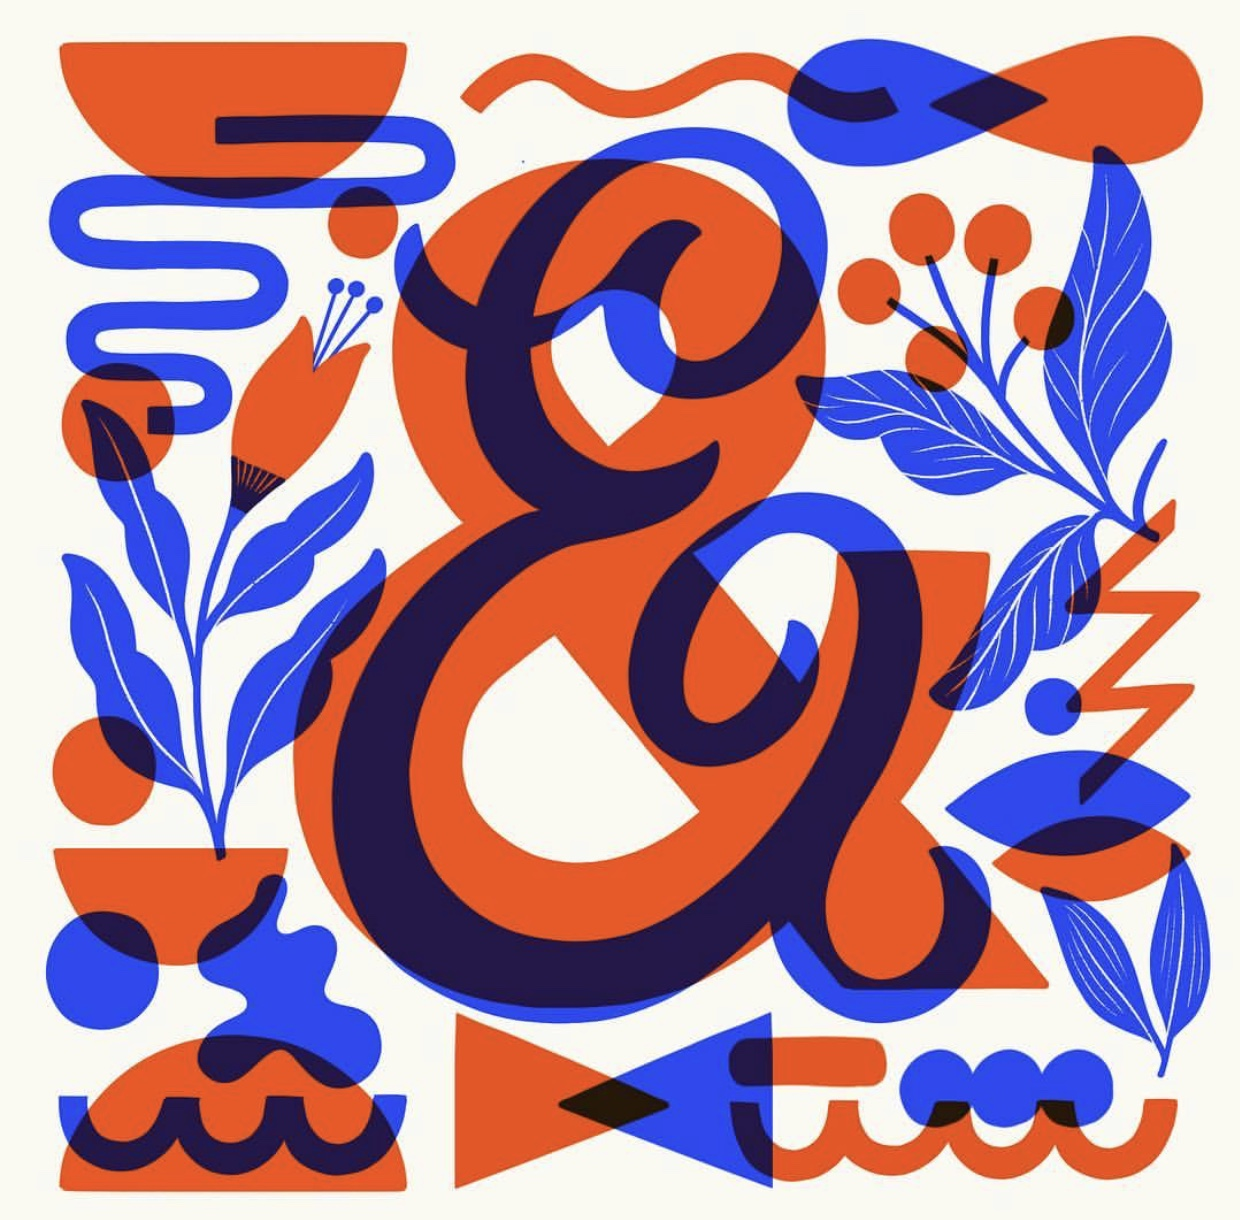 Blue and Orange Ampersands with Background Designs